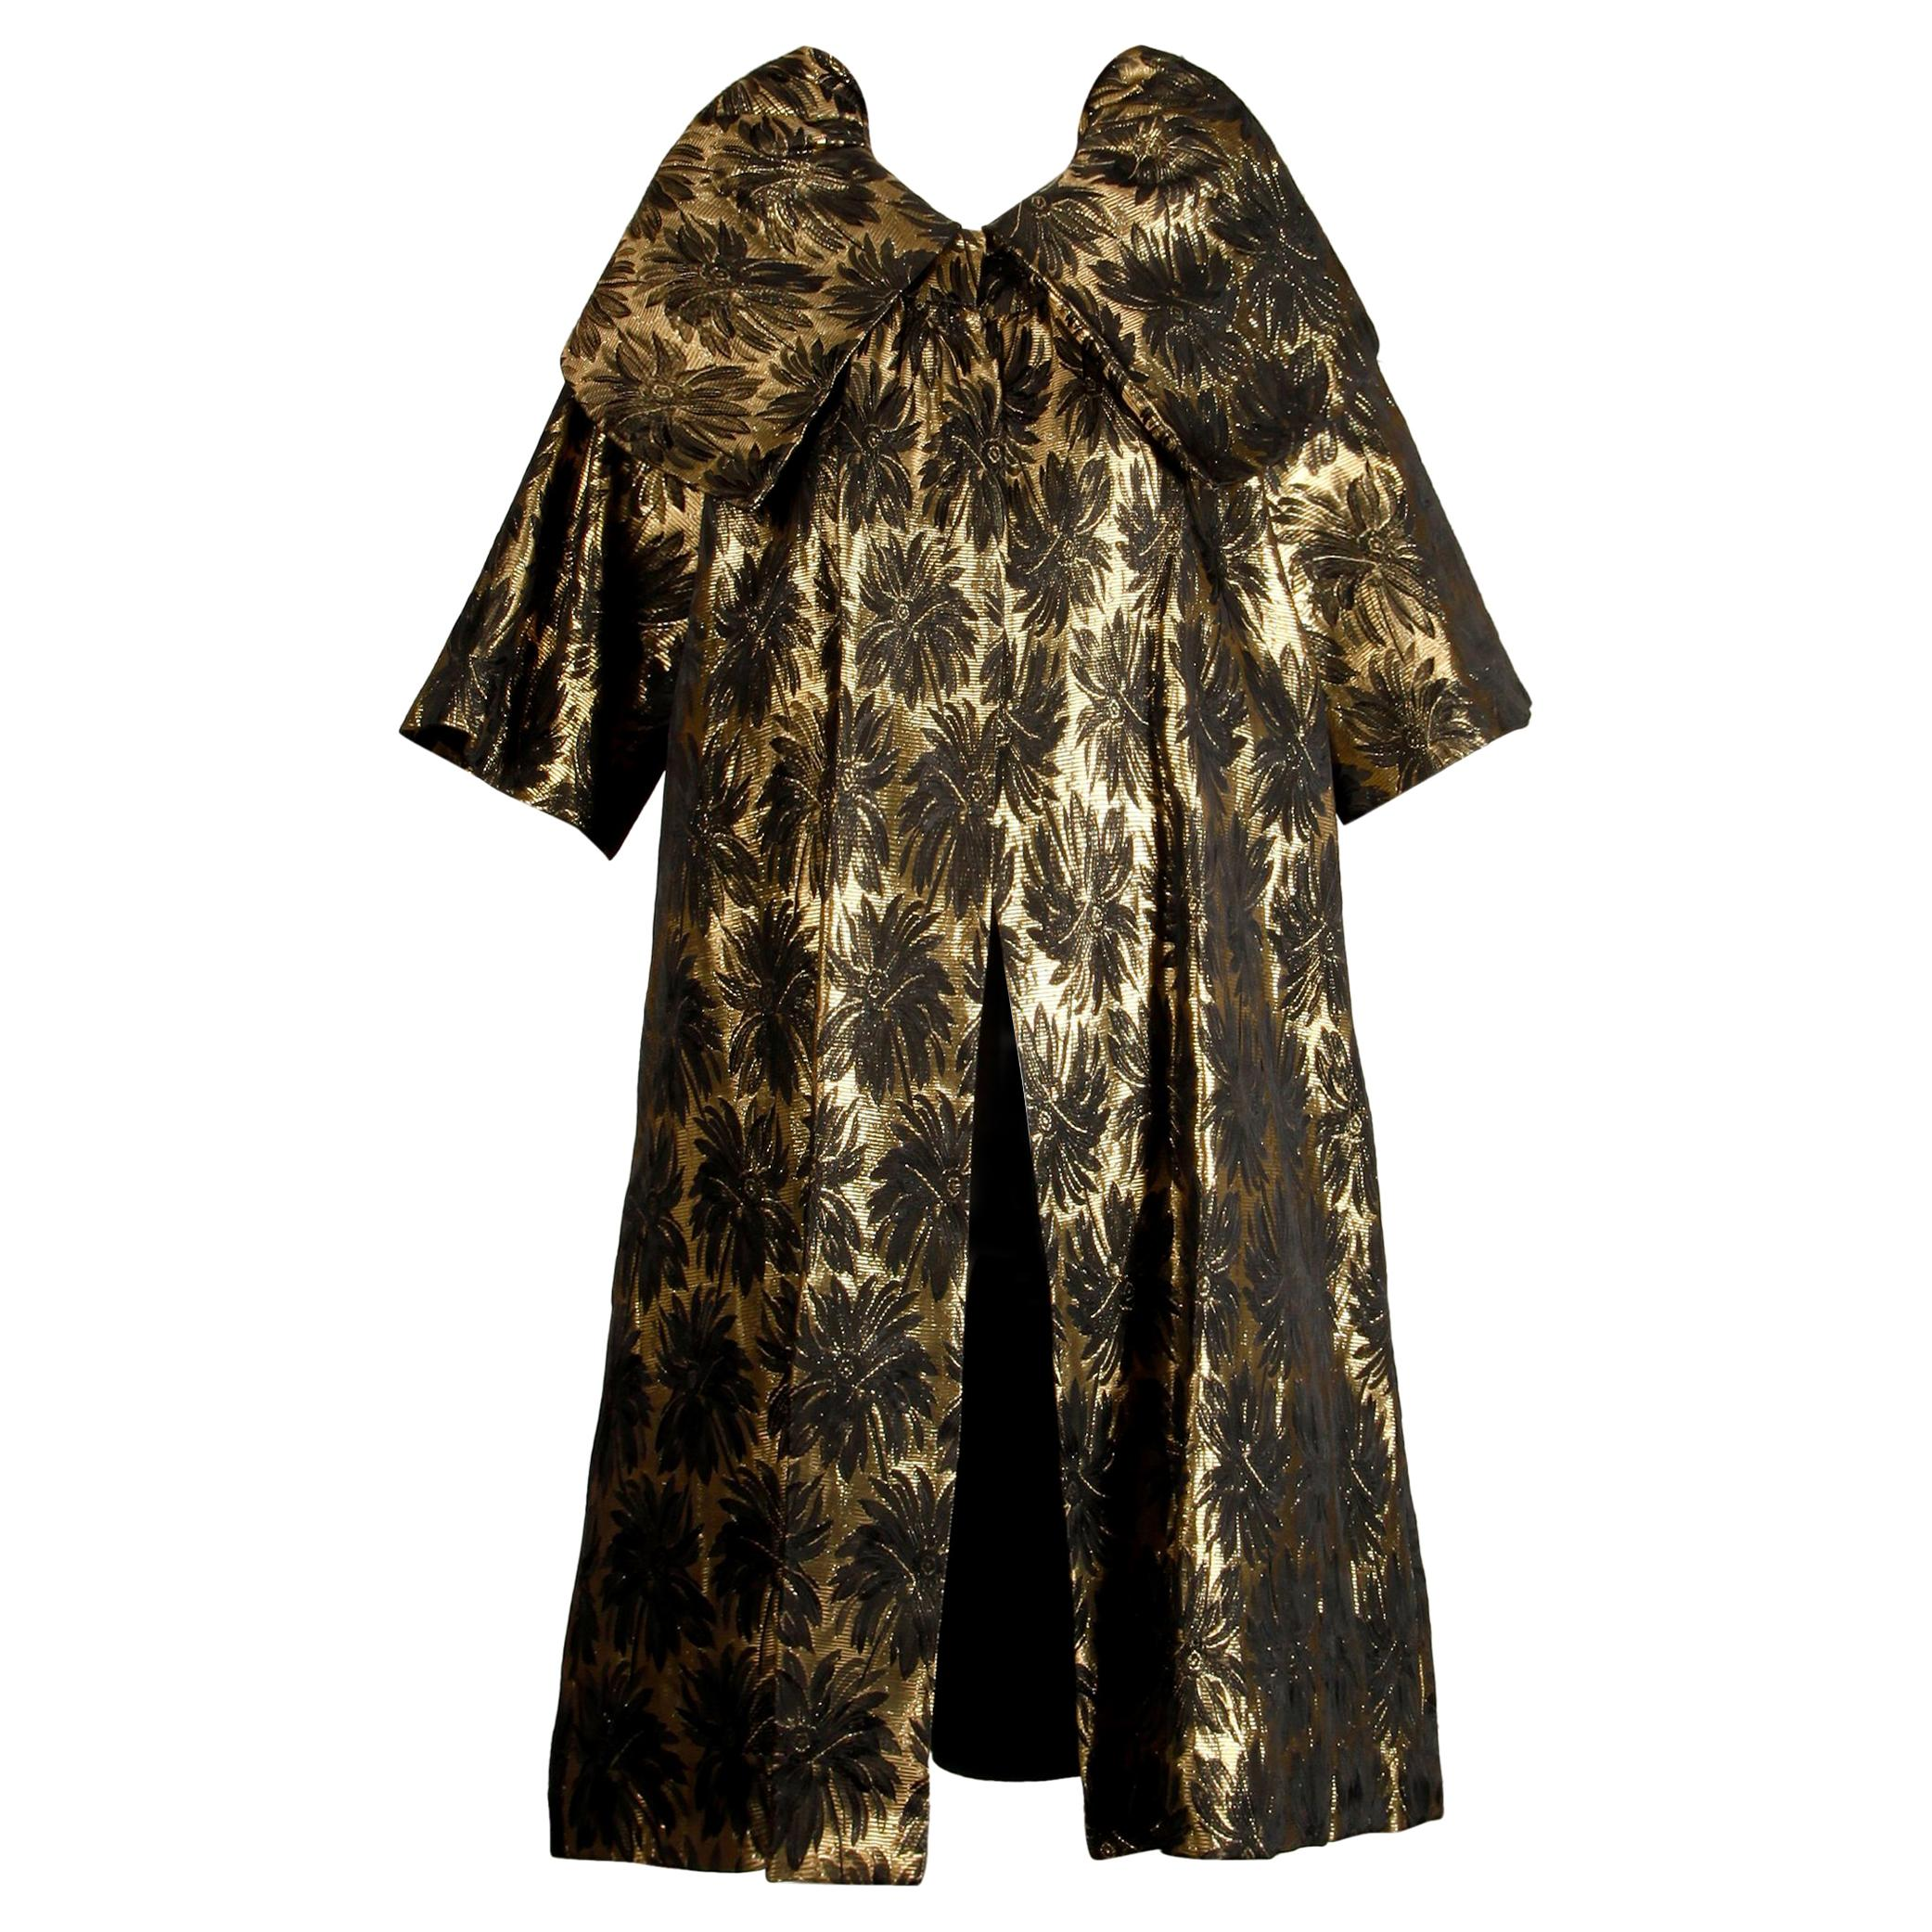 1960s Vintage Metallic Gold Damask Opera or Evening Coat with Pop Up Collar